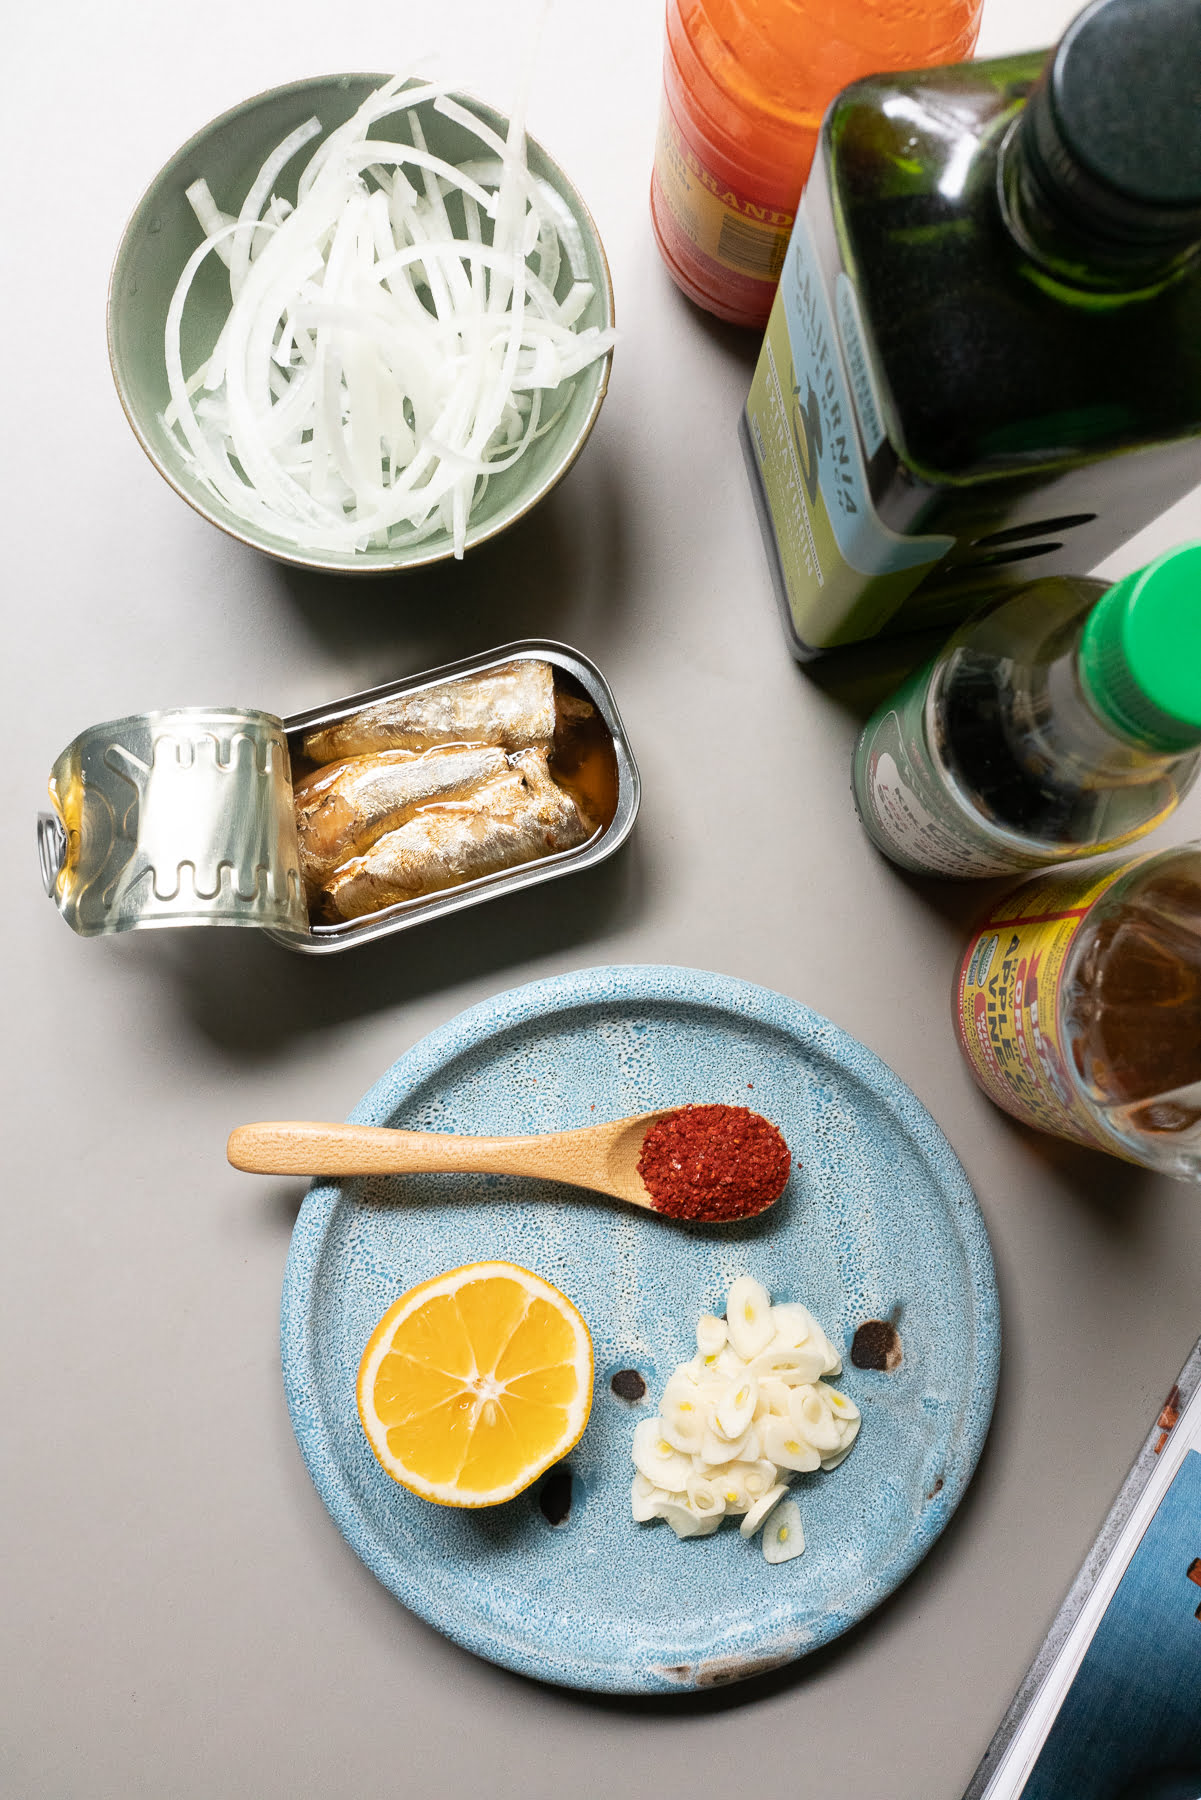 Ingredients for Sardine Pupu: canned sardines, onions, garlic, Korean chili pepper, lemon, olive oil, soy sauce, apple cider vinegar, and chili pepper water.